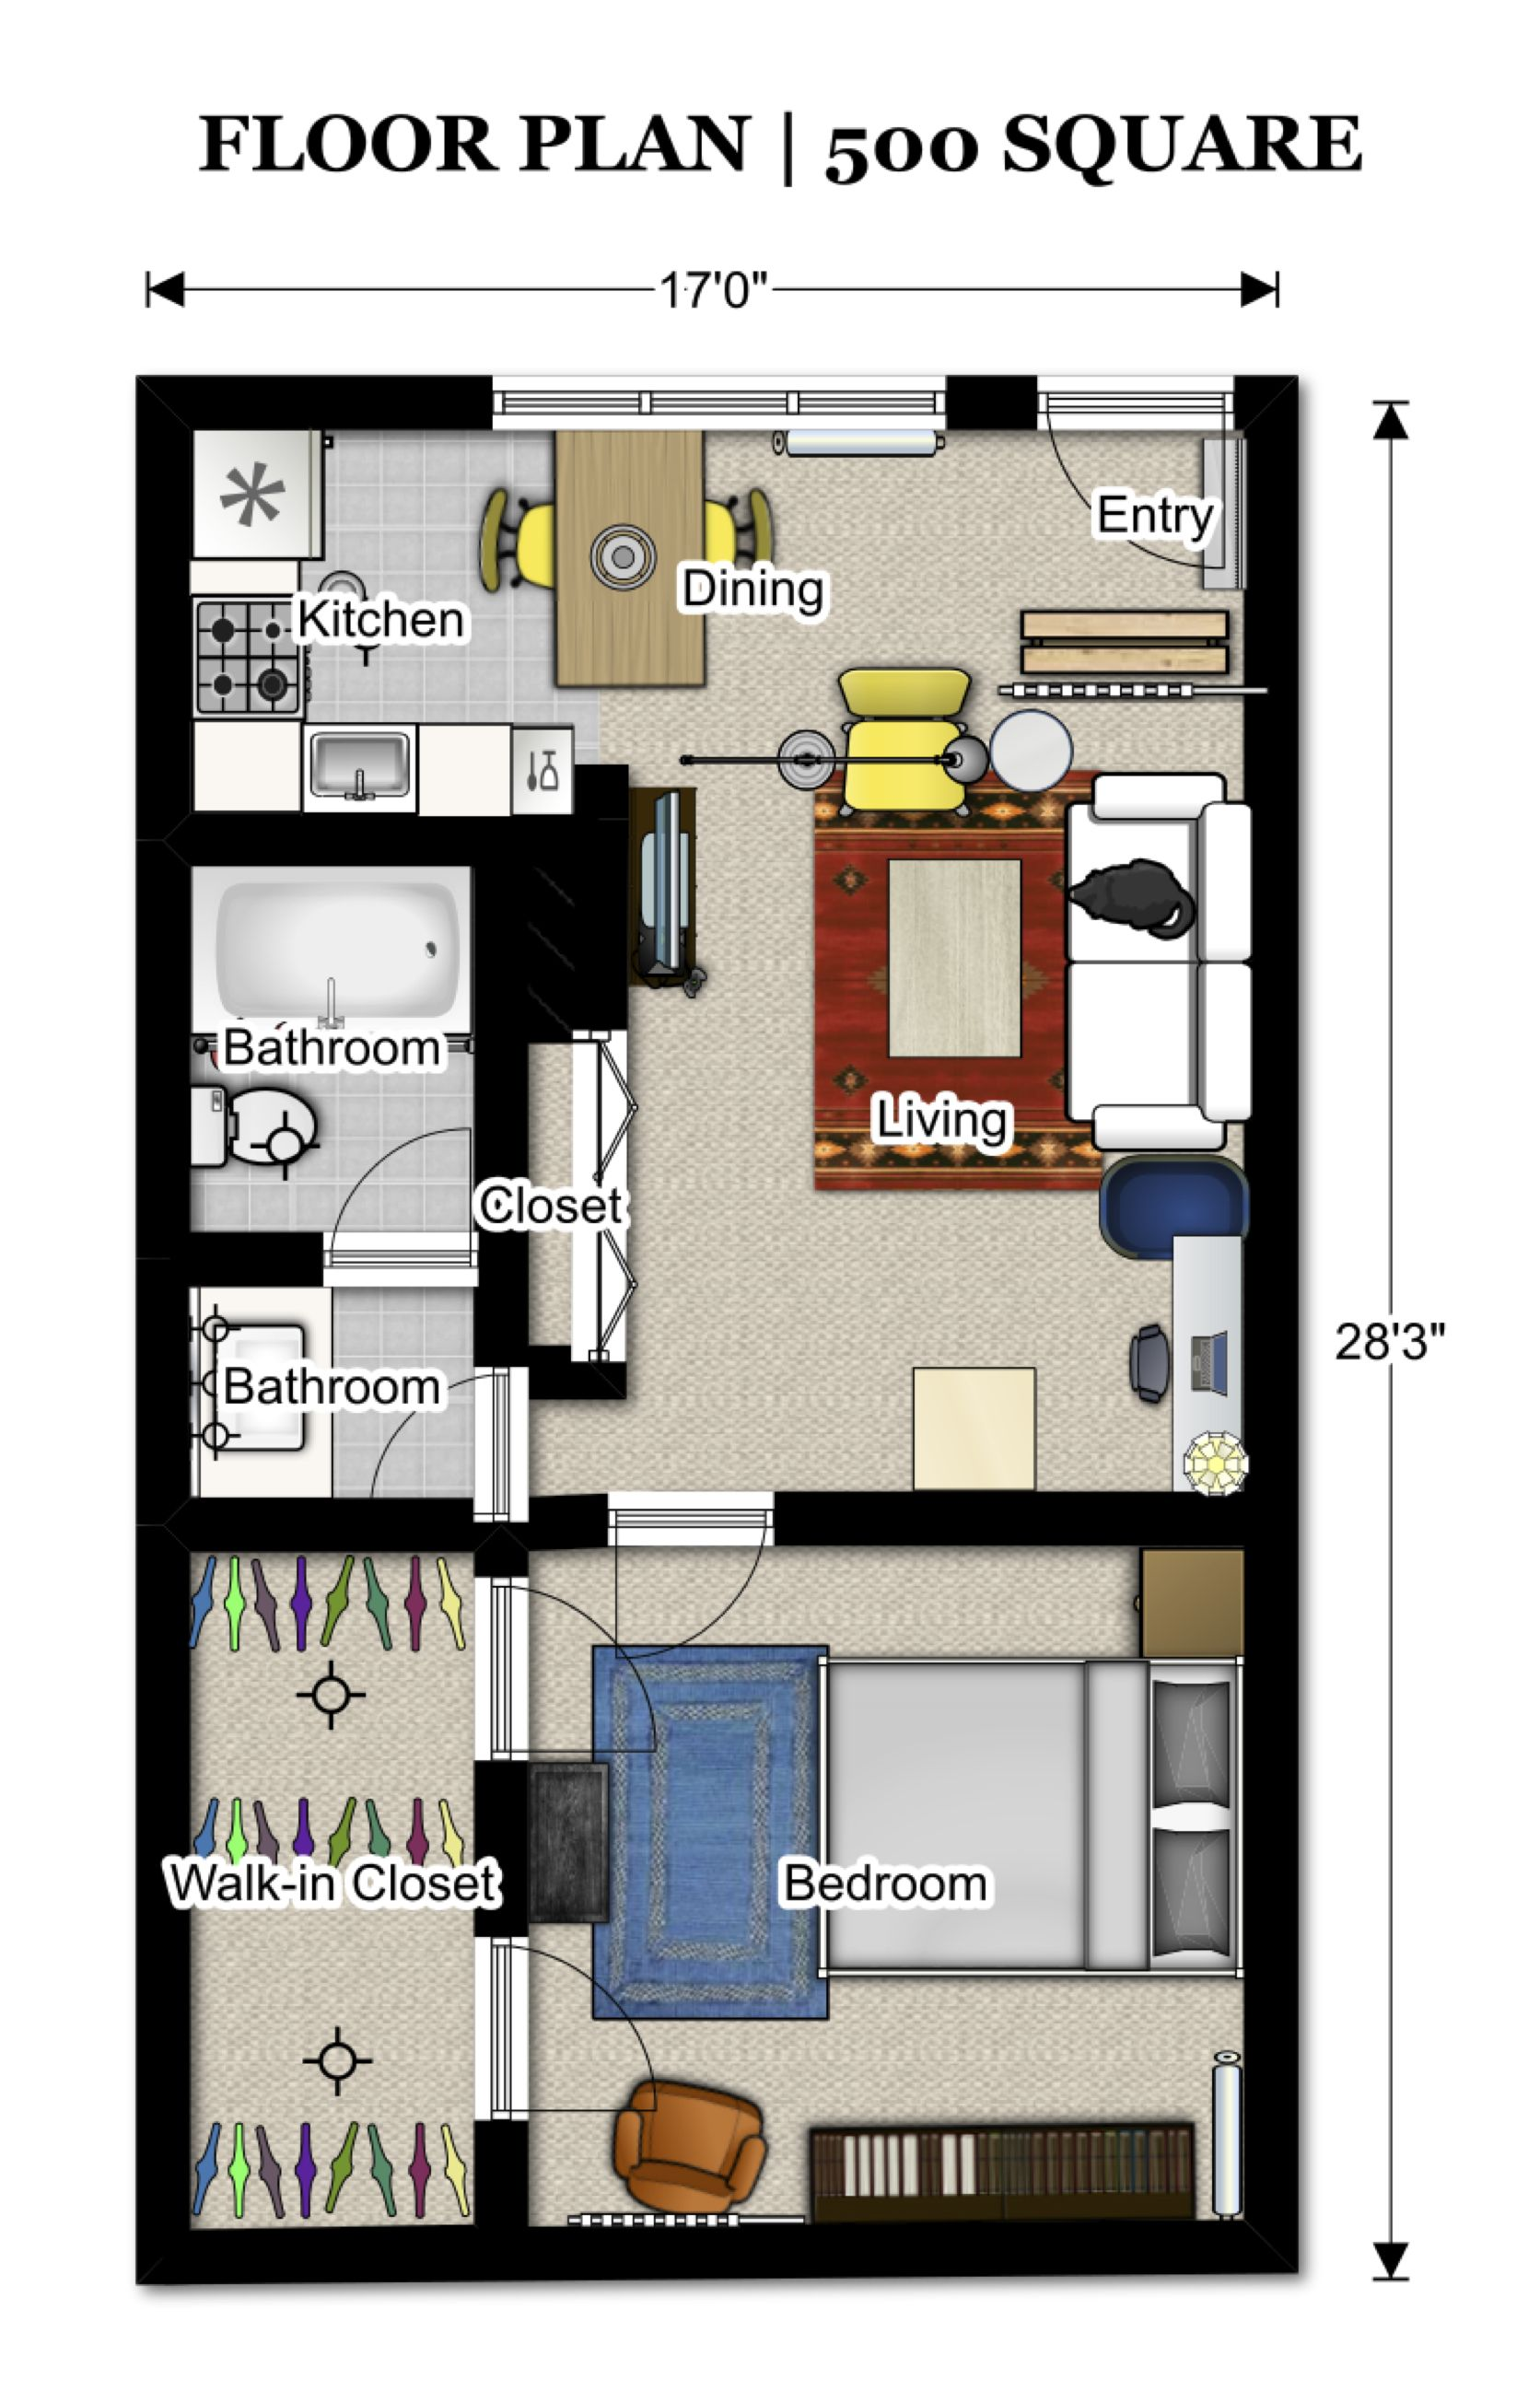 Floor plans 500 sq ft 352 3 pinterest apartment 500 square foot apartment floor plans